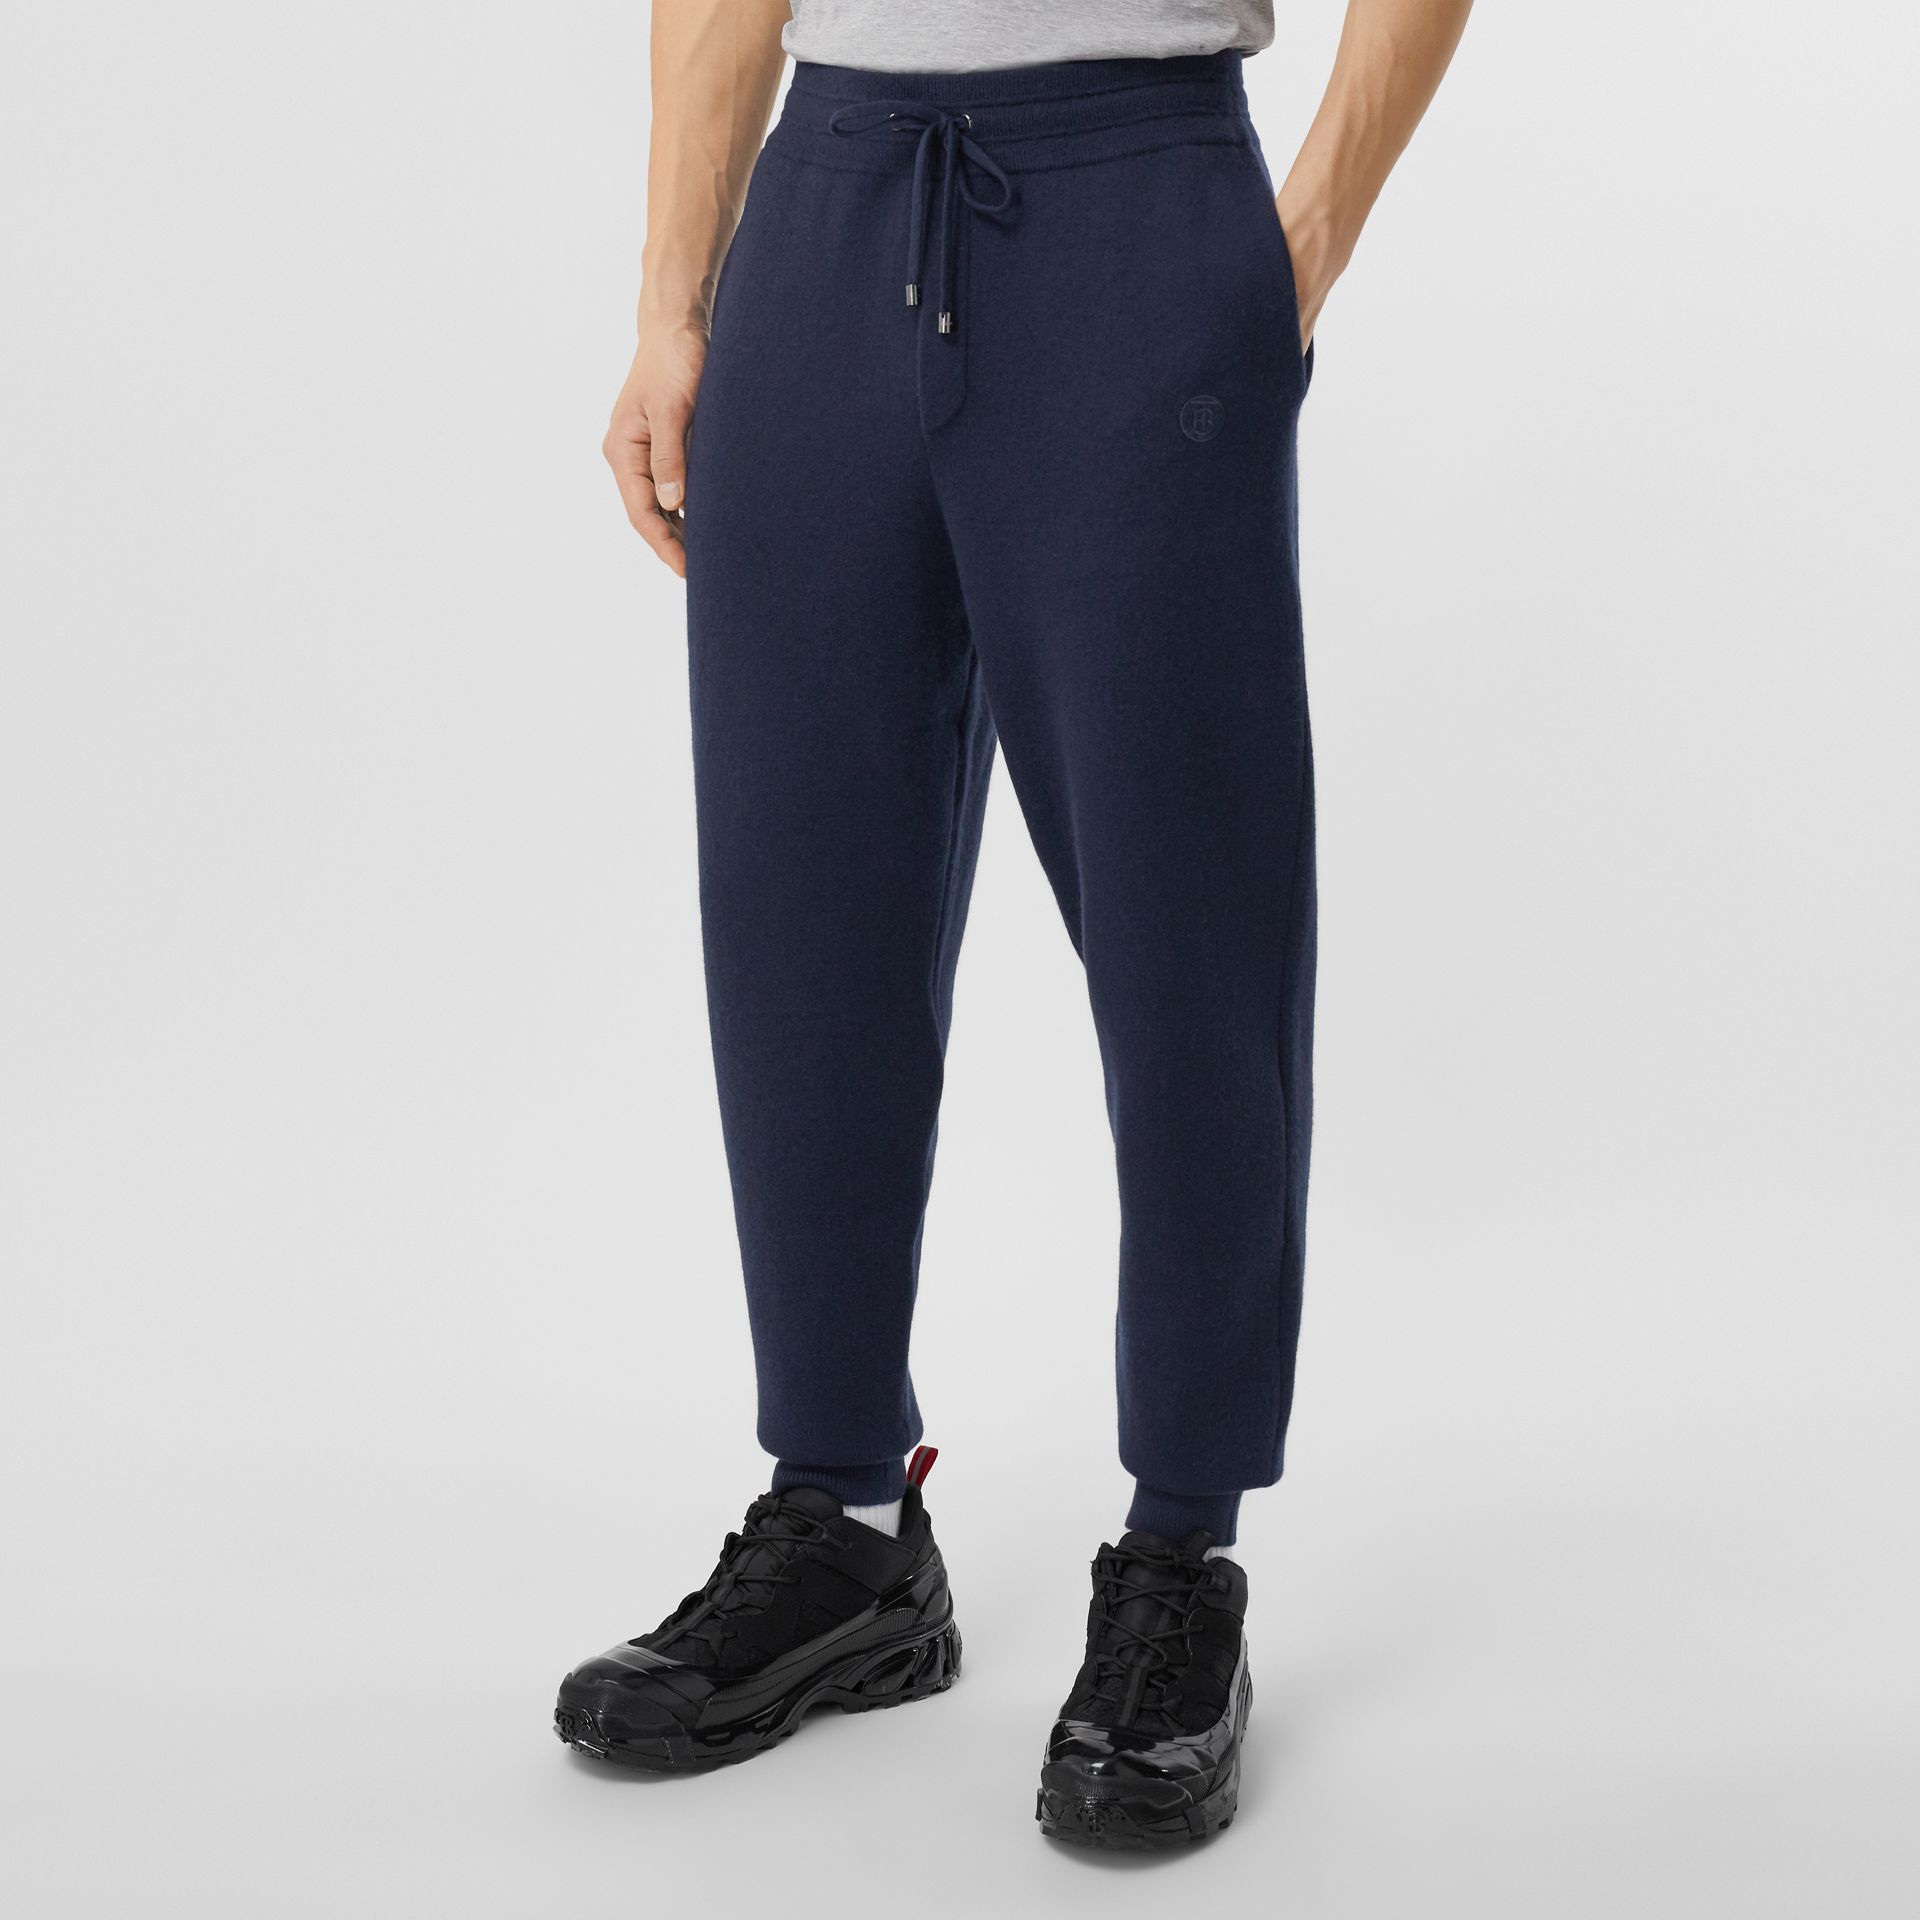 Monogram Motif Cashmere Blend Jogging Pants in Navy - Men | Burberry - gallery image 4